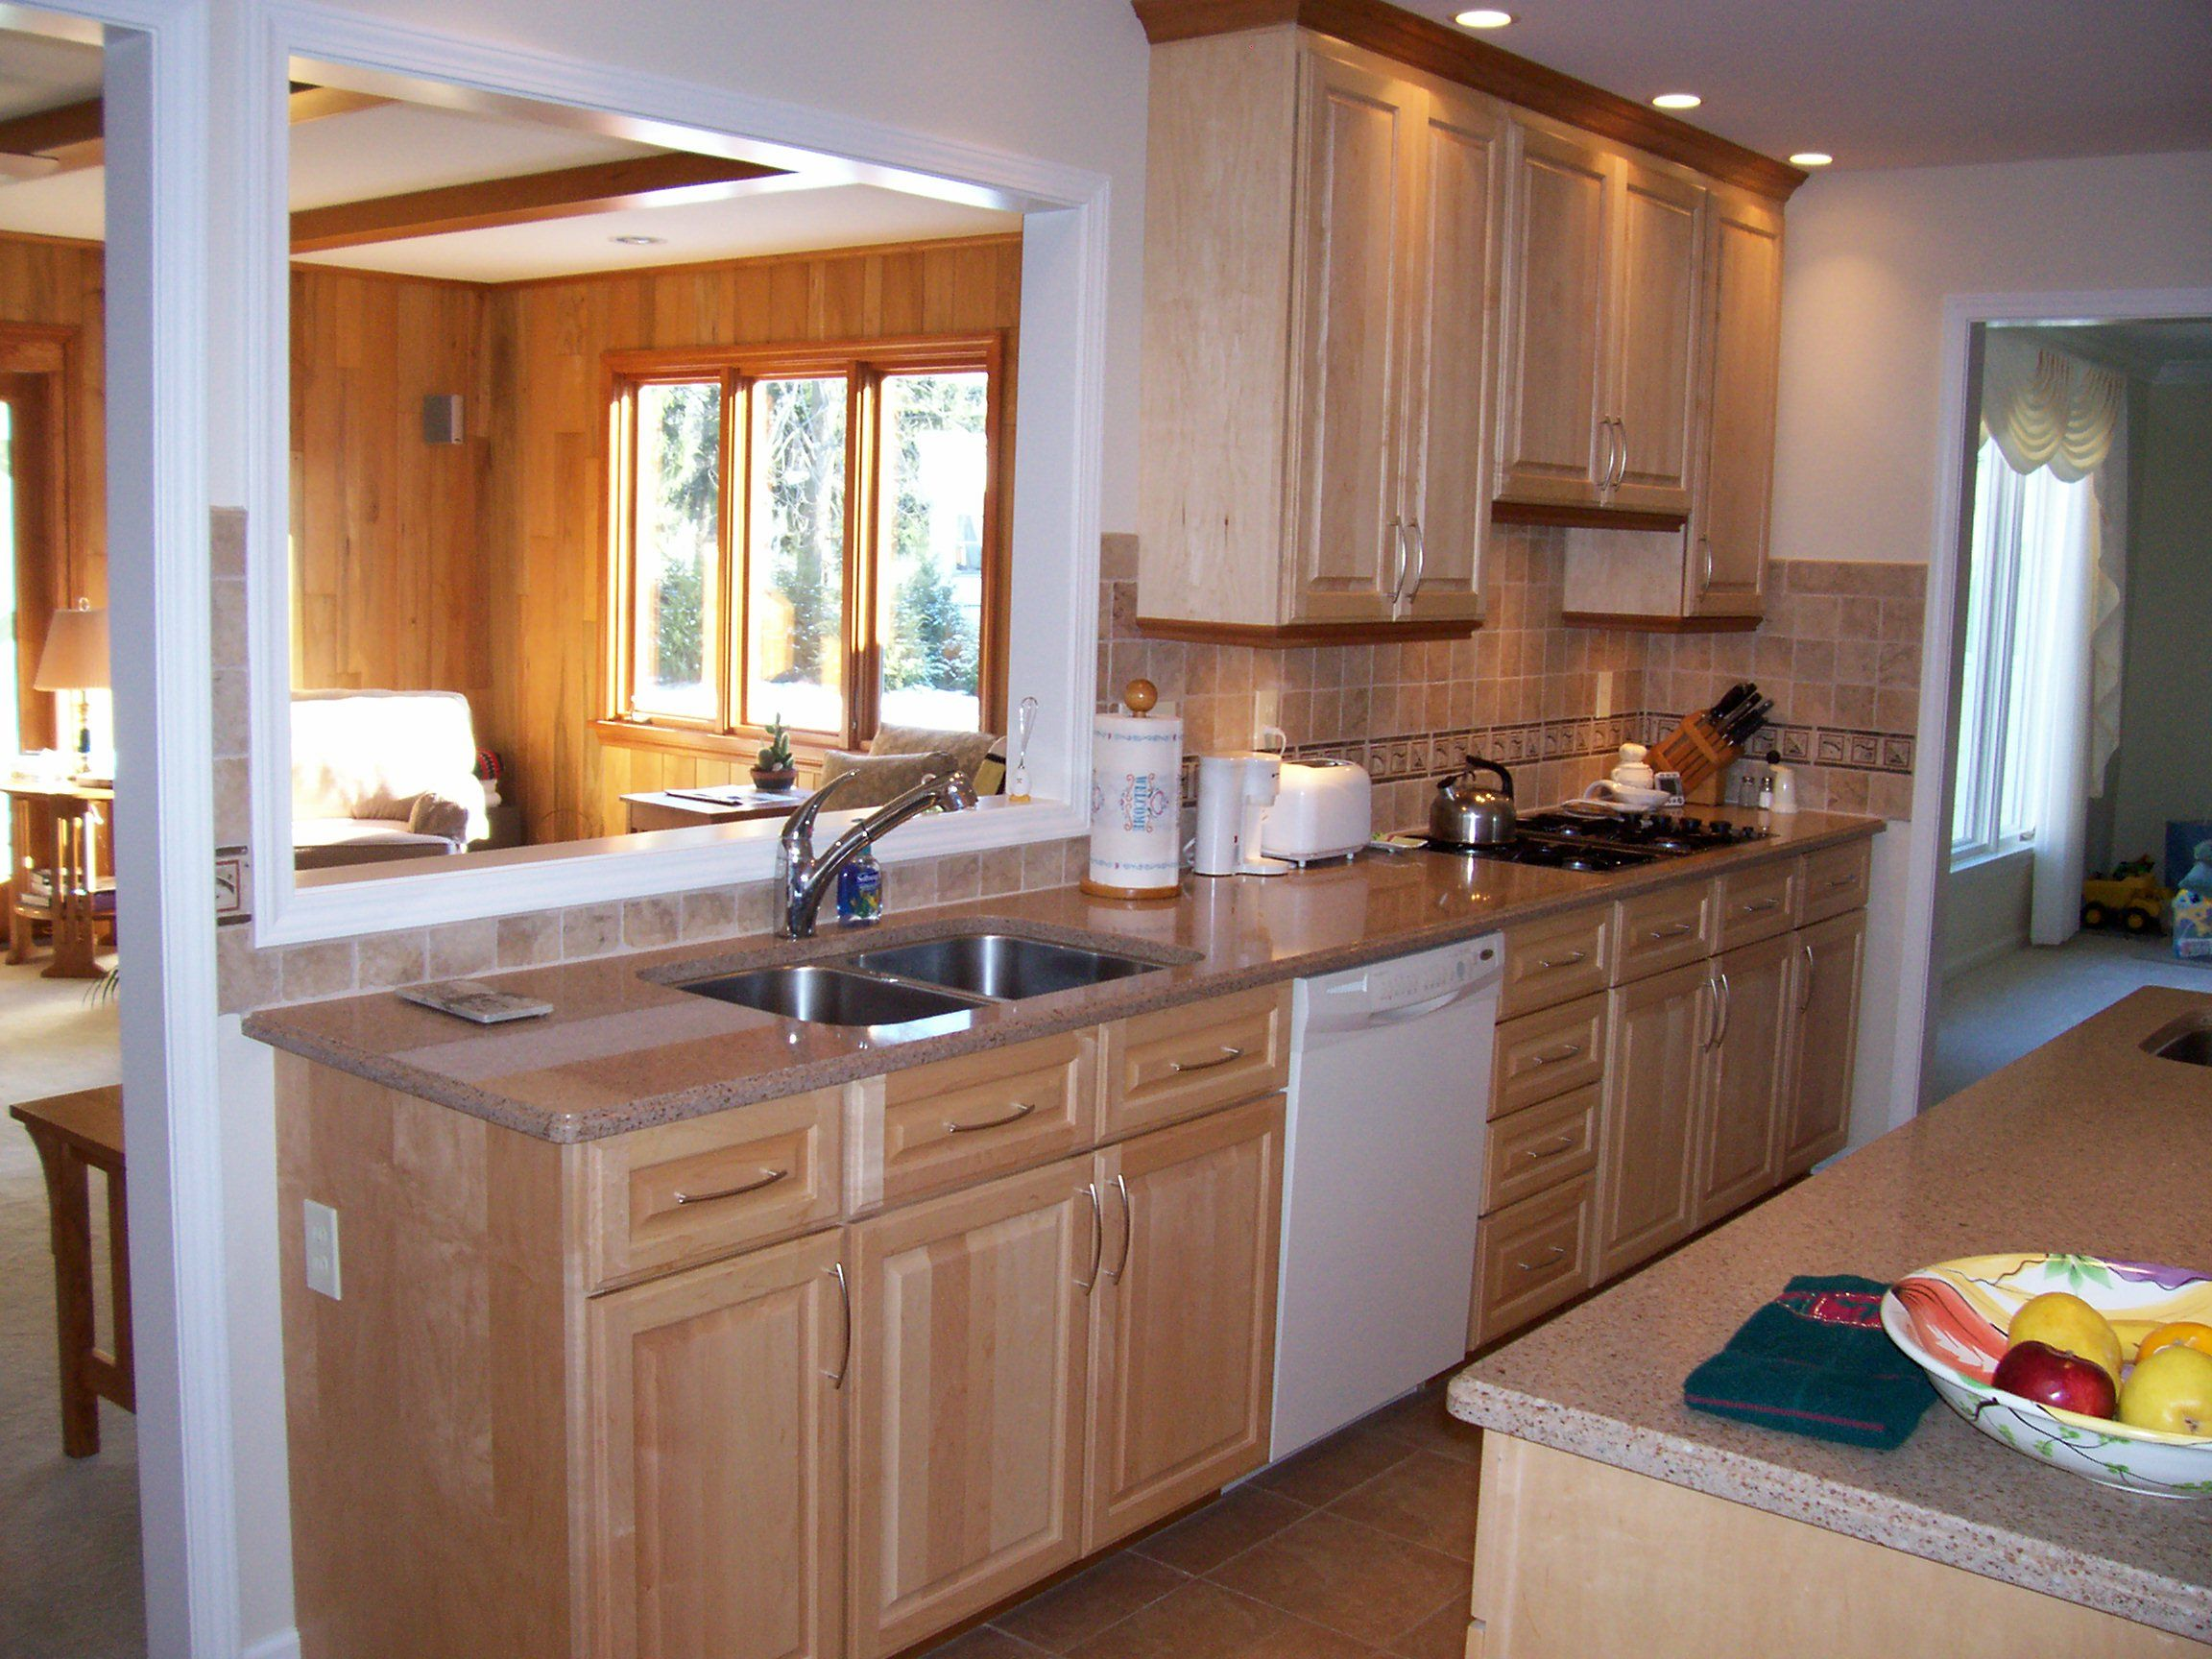 Maple cabinets with quartz countertops. (With images ... on Countertops That Go With Maple Cabinets  id=45038